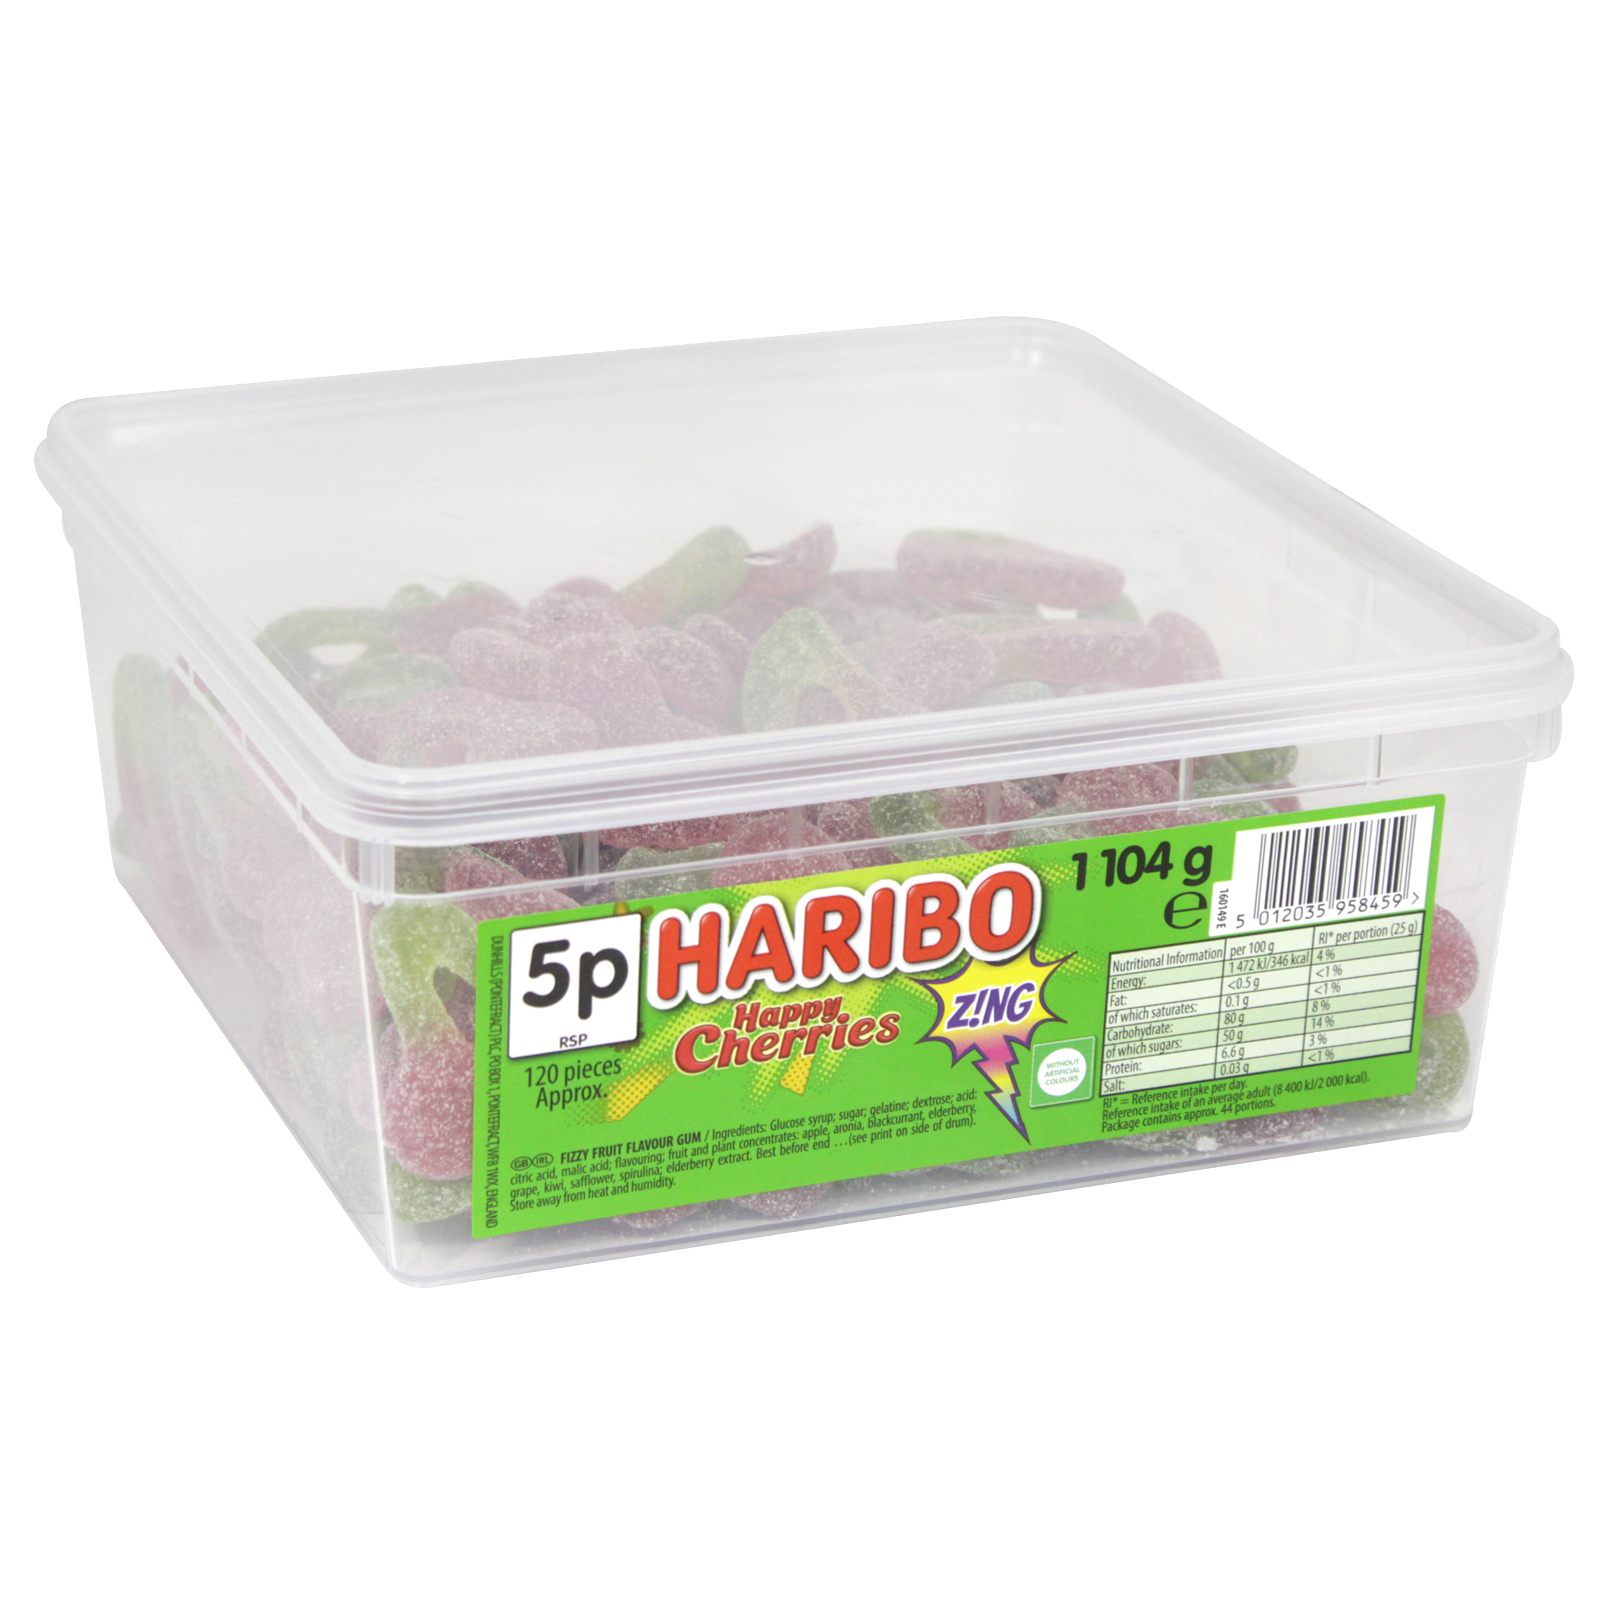 HARIBO HAPPY CHERRIES ZING DRUM 1104G APPROX 120 PIECES